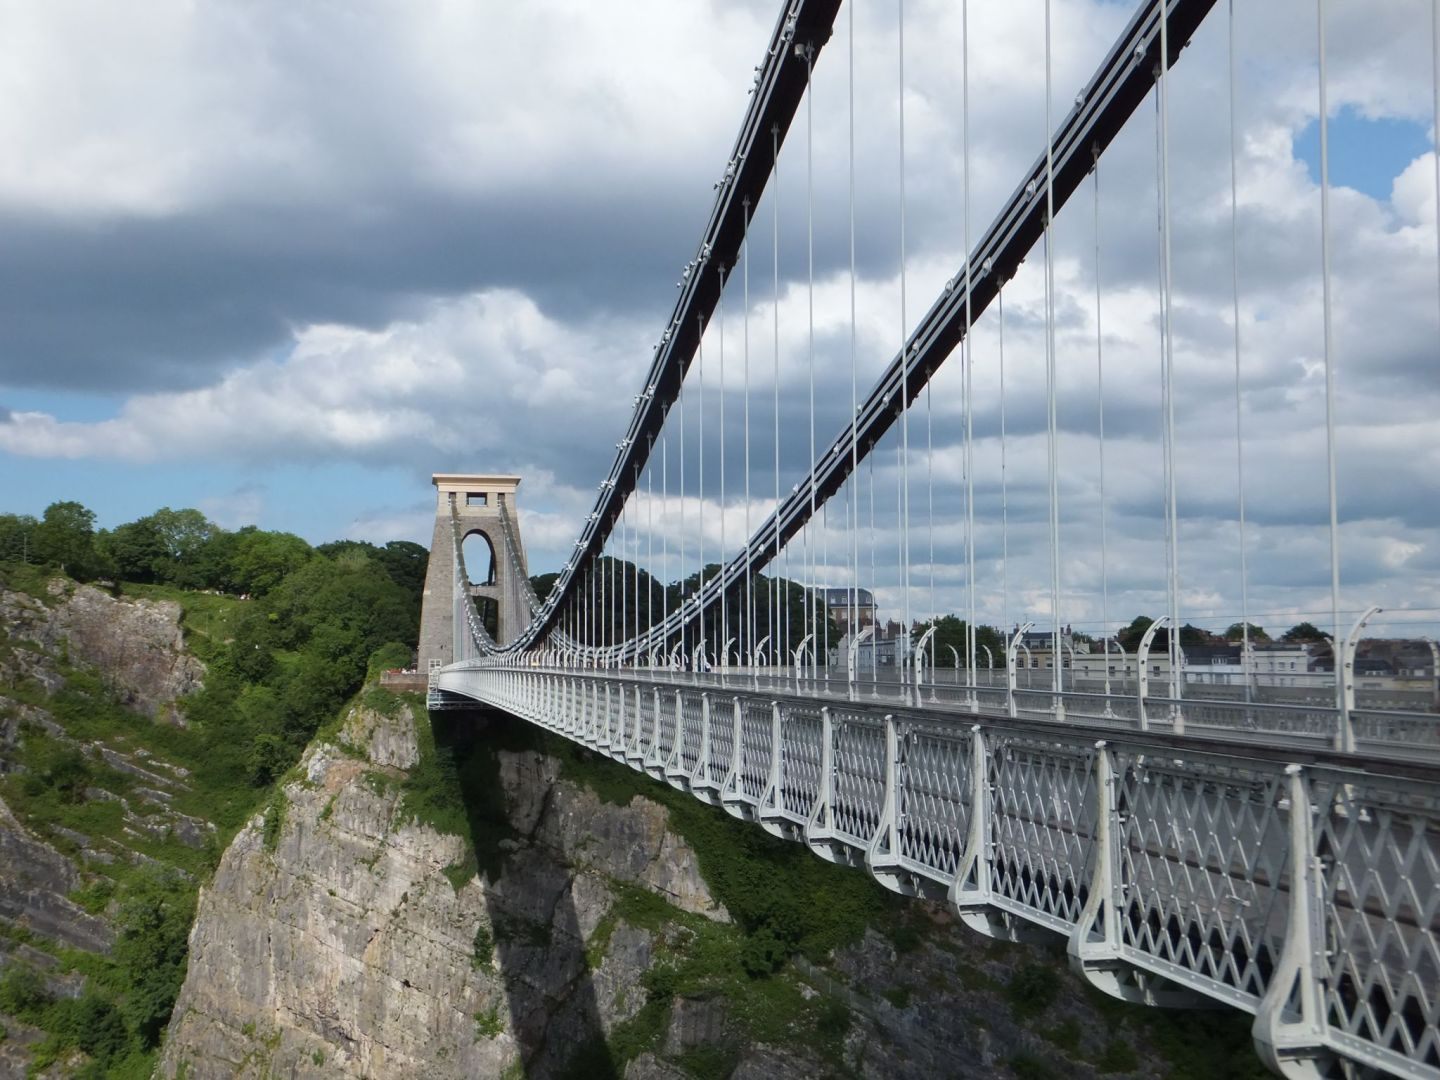 My favourite places in and around Bristol